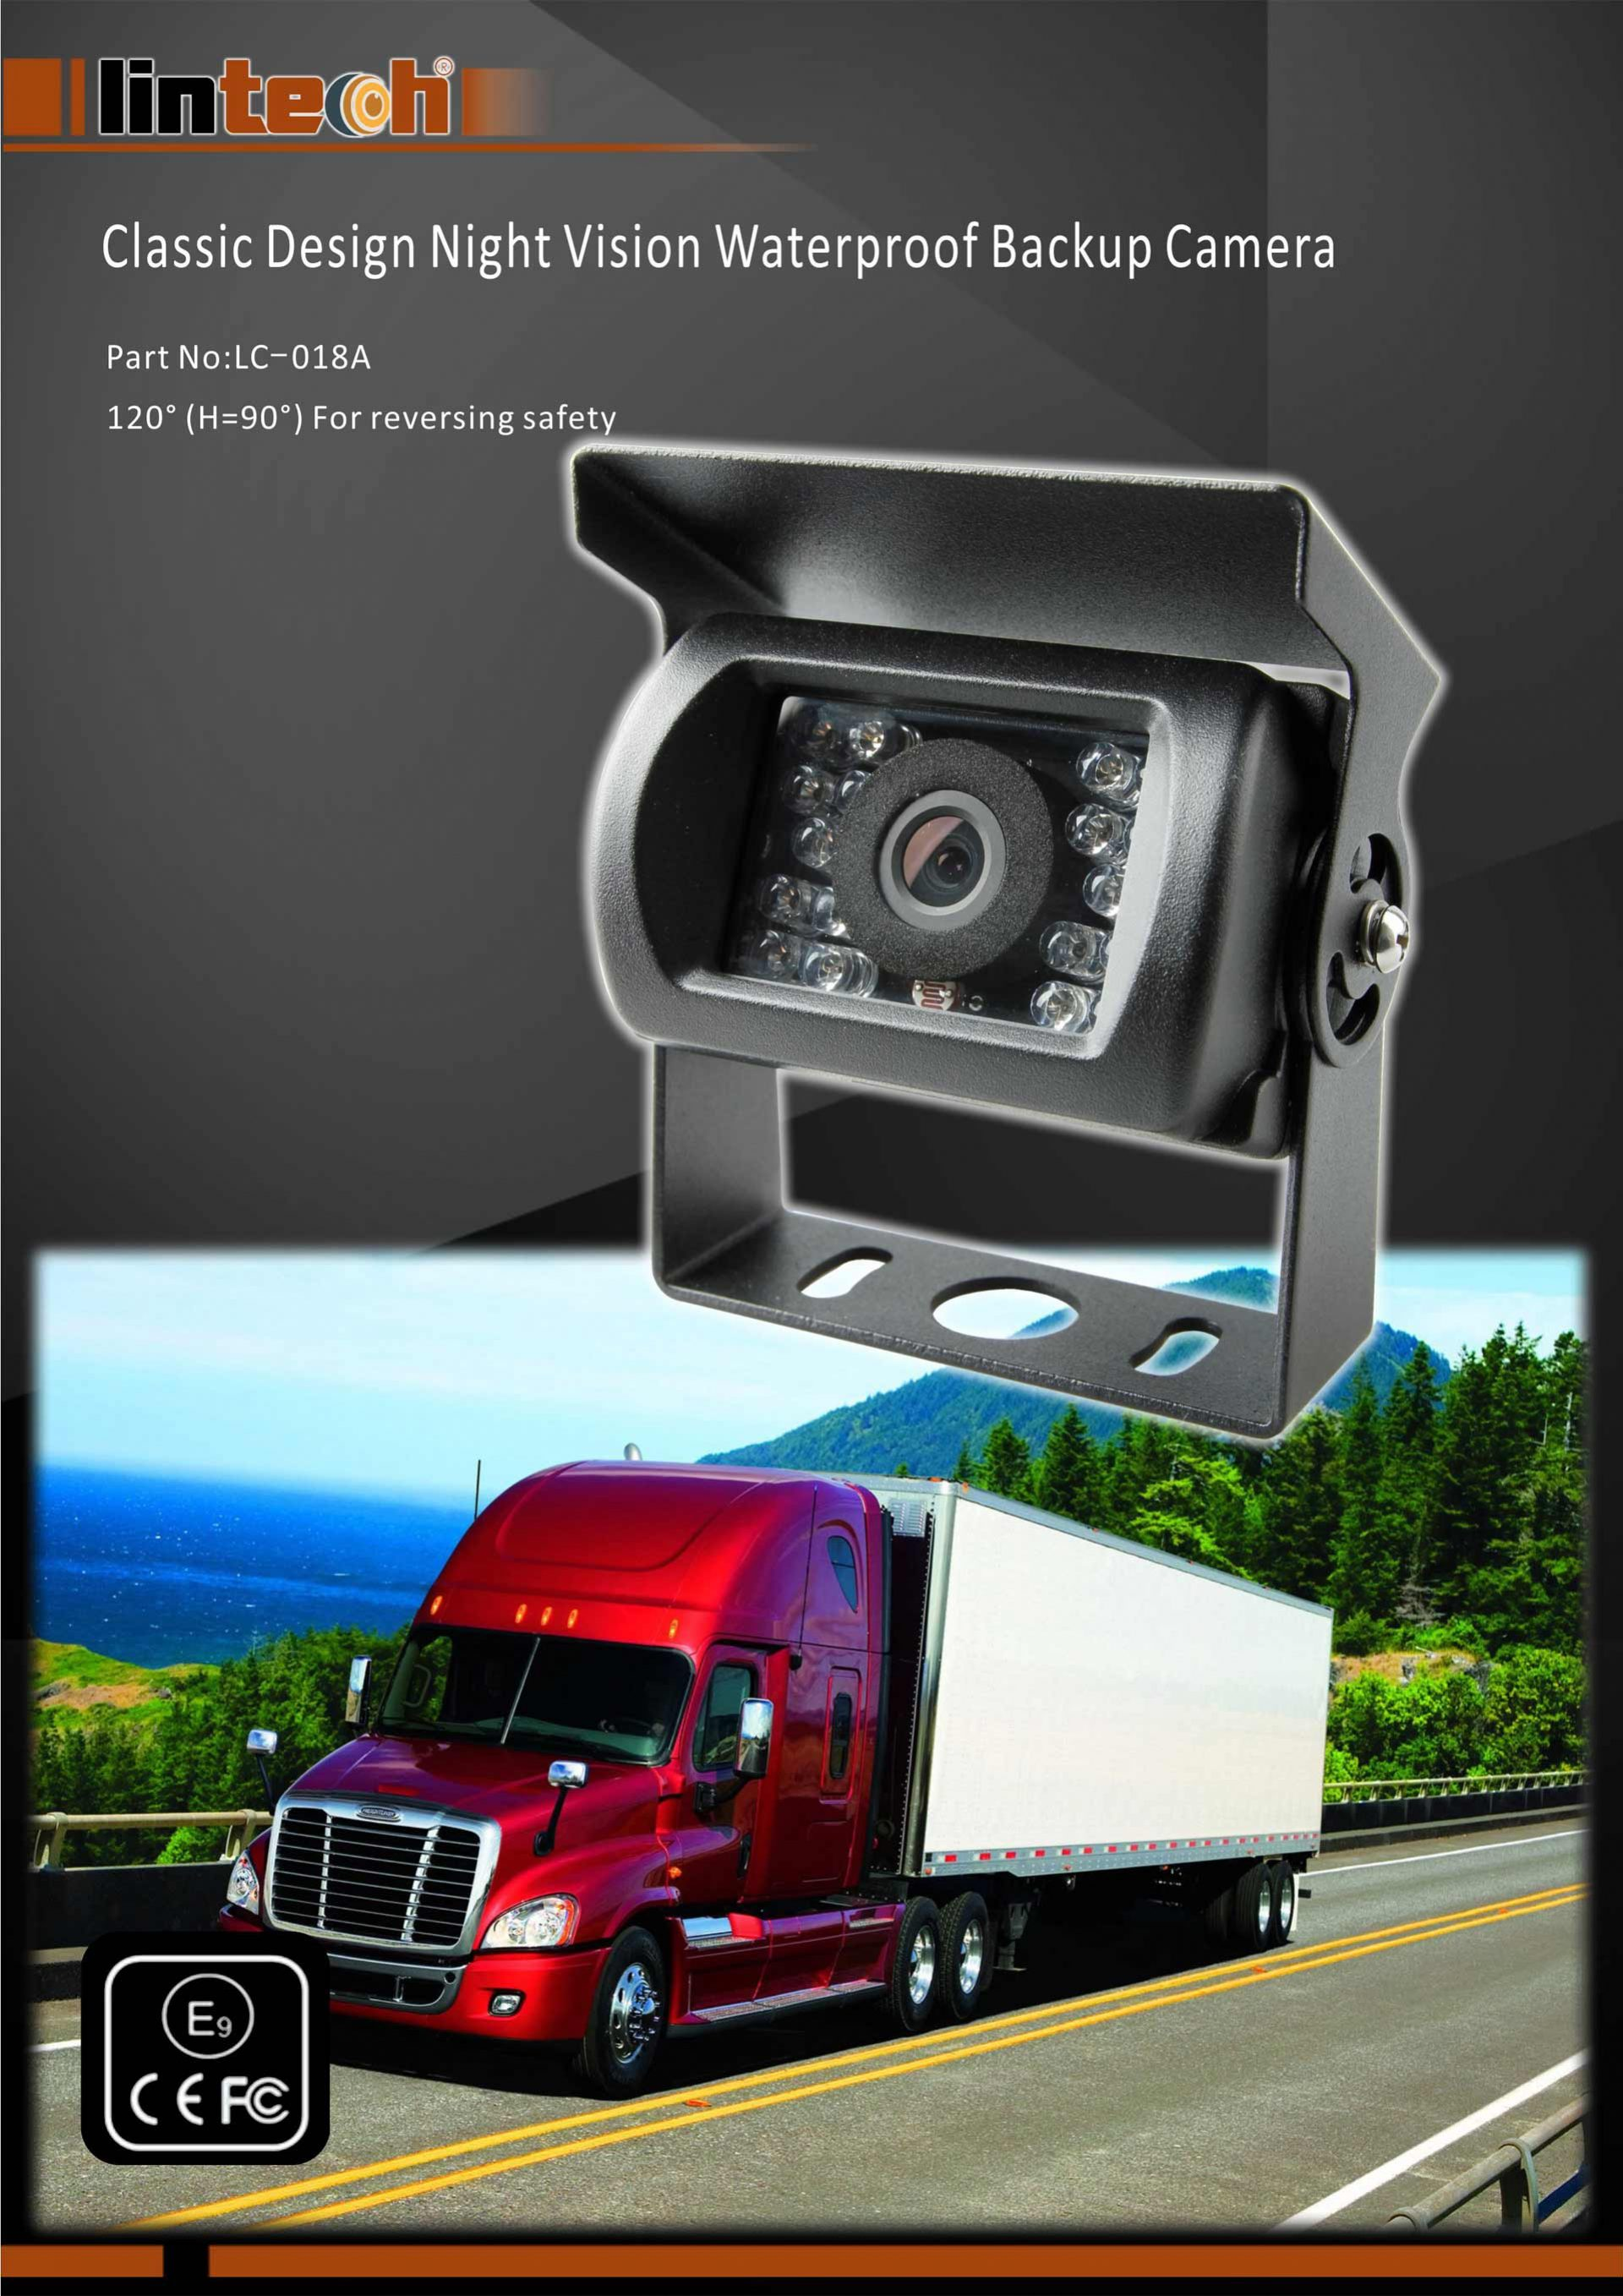 1.Classic-Design-Night-Vision-Waterproof-Backup-Camera